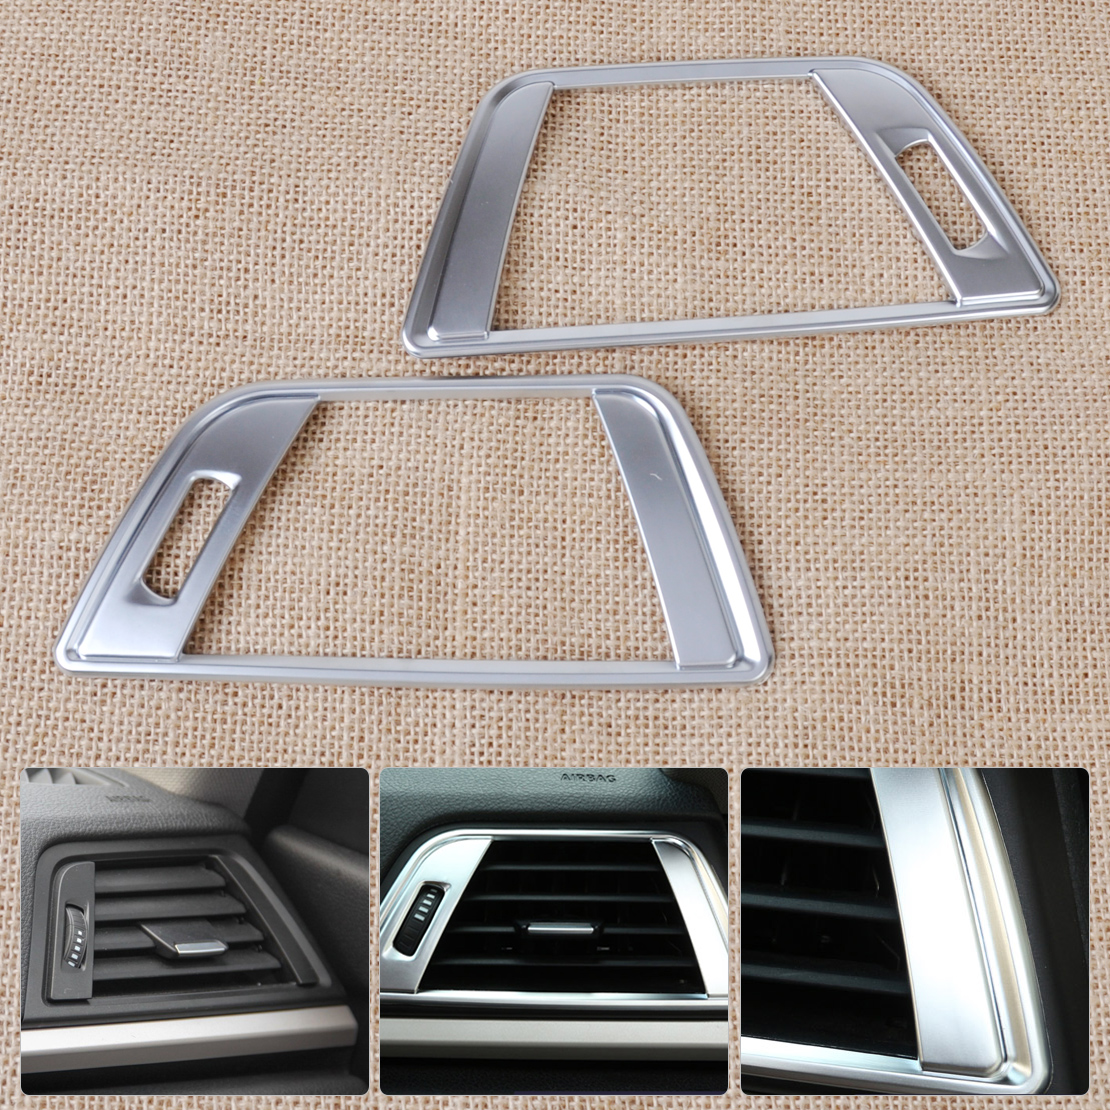 beler Silver Chrome Dashboard Side Air Vent Outlet Trim Cover for BMW 3 4 Series F30 <font><b>F31</b></font> F32 F34 F35 F36 2014 2015 2016 image